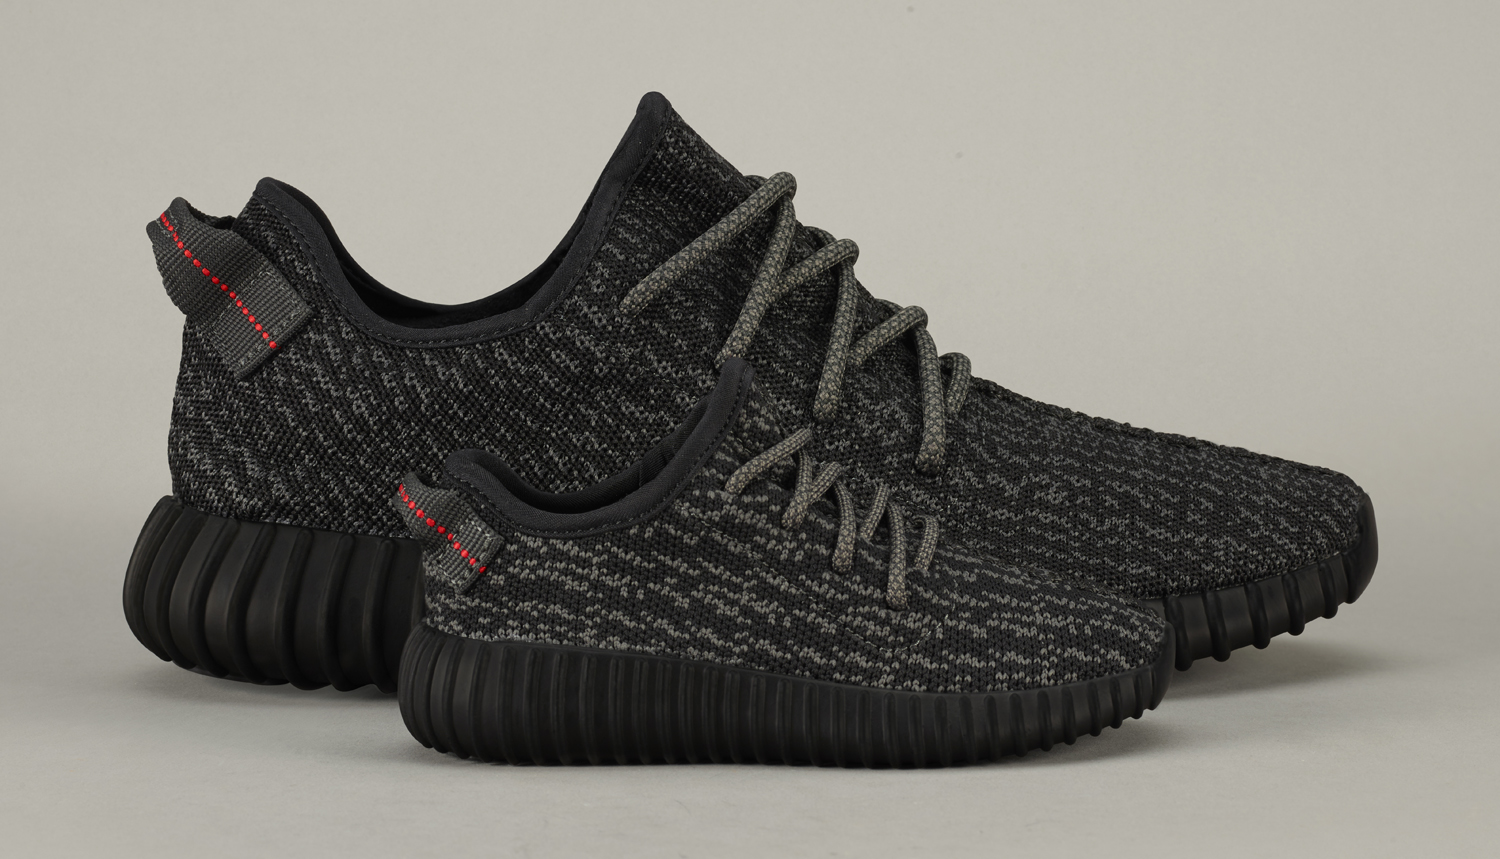 Infant Adidas Yeezy 350 Boost Price | Sole Collector